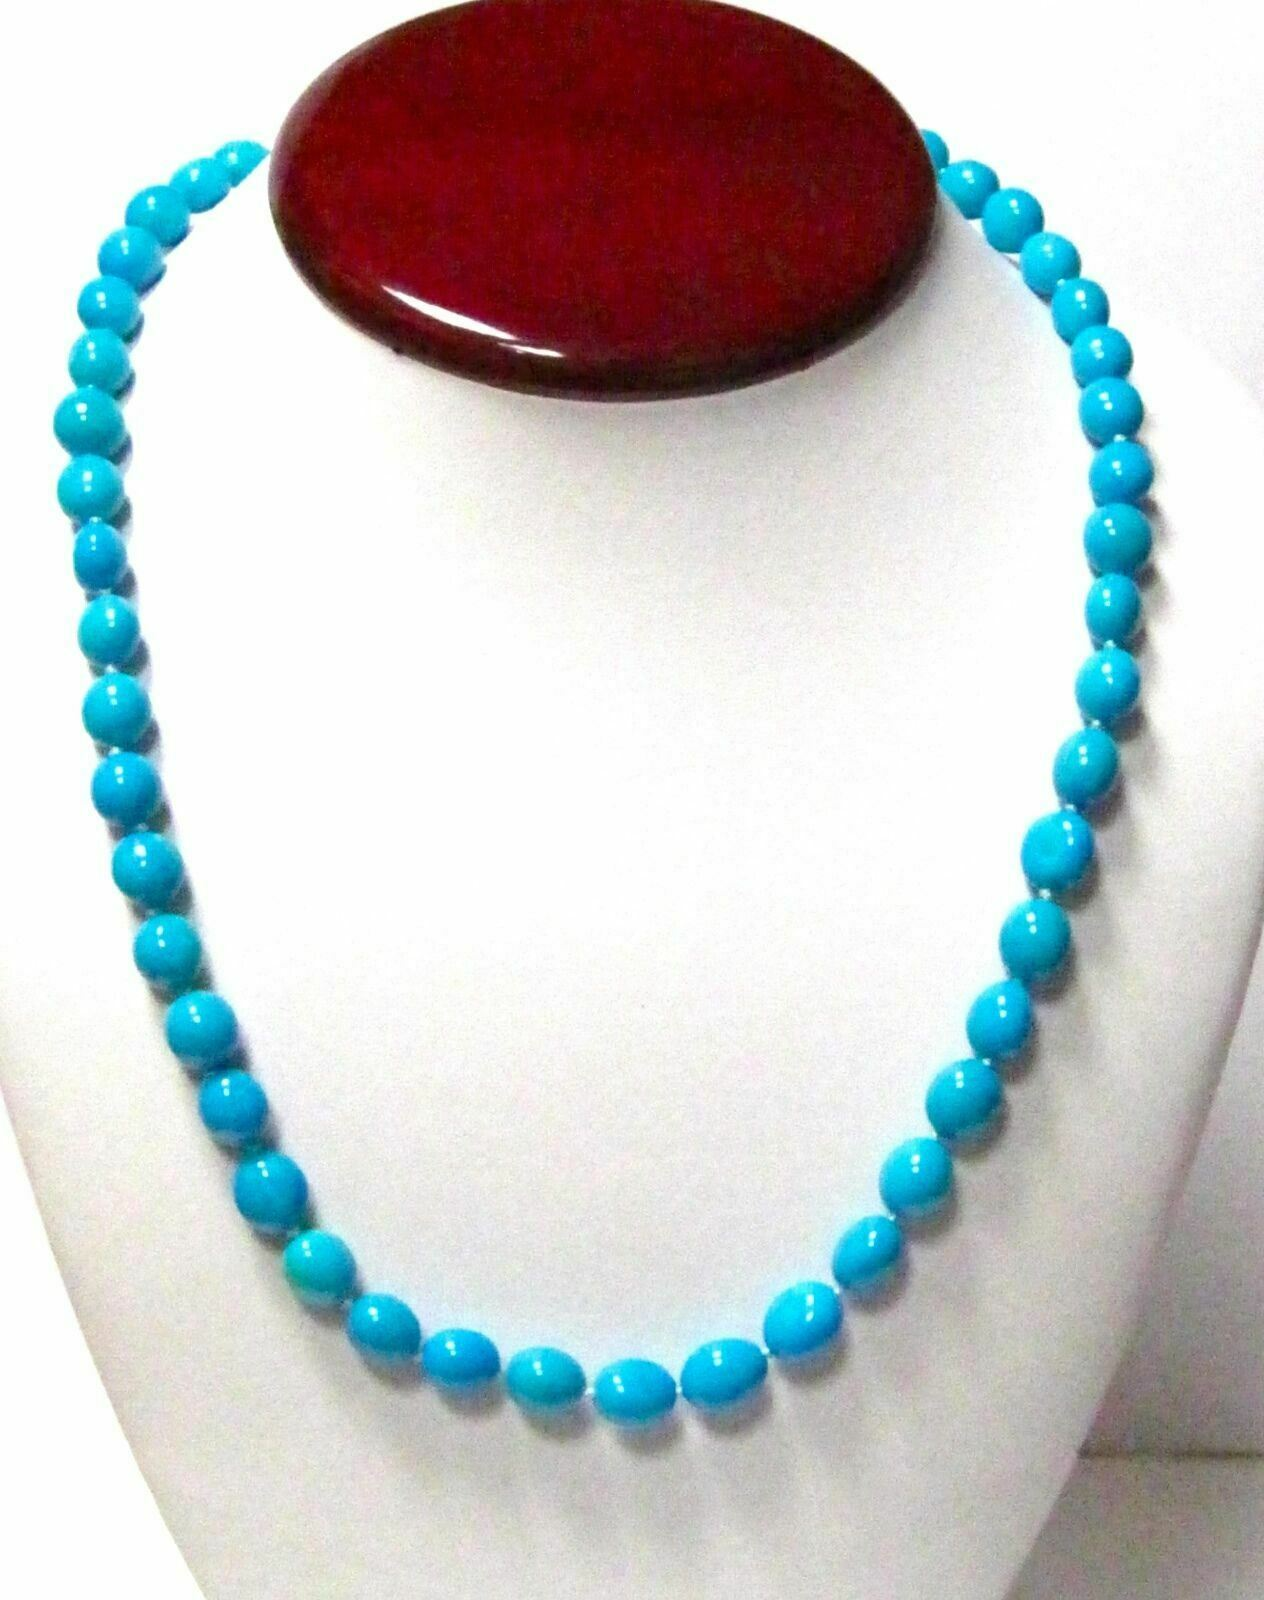 208.64 TCW Oblong/Oval Shape Persian Turquoise Bead String Necklace 20 Inches